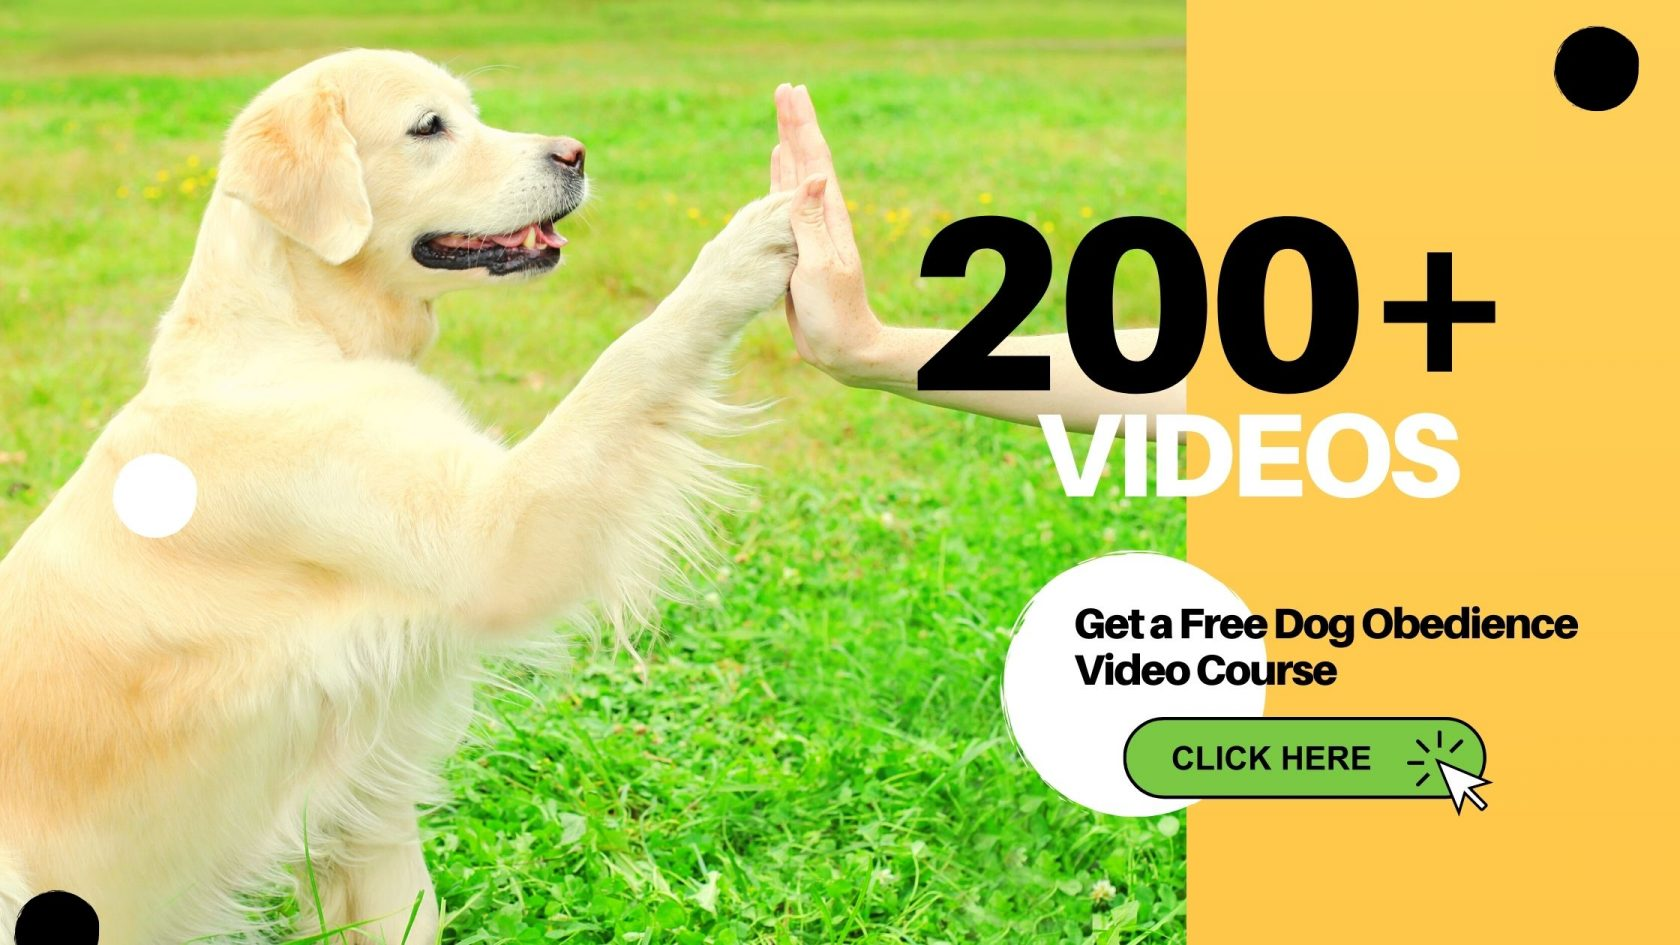 Get Free Dog Obedience Video Course